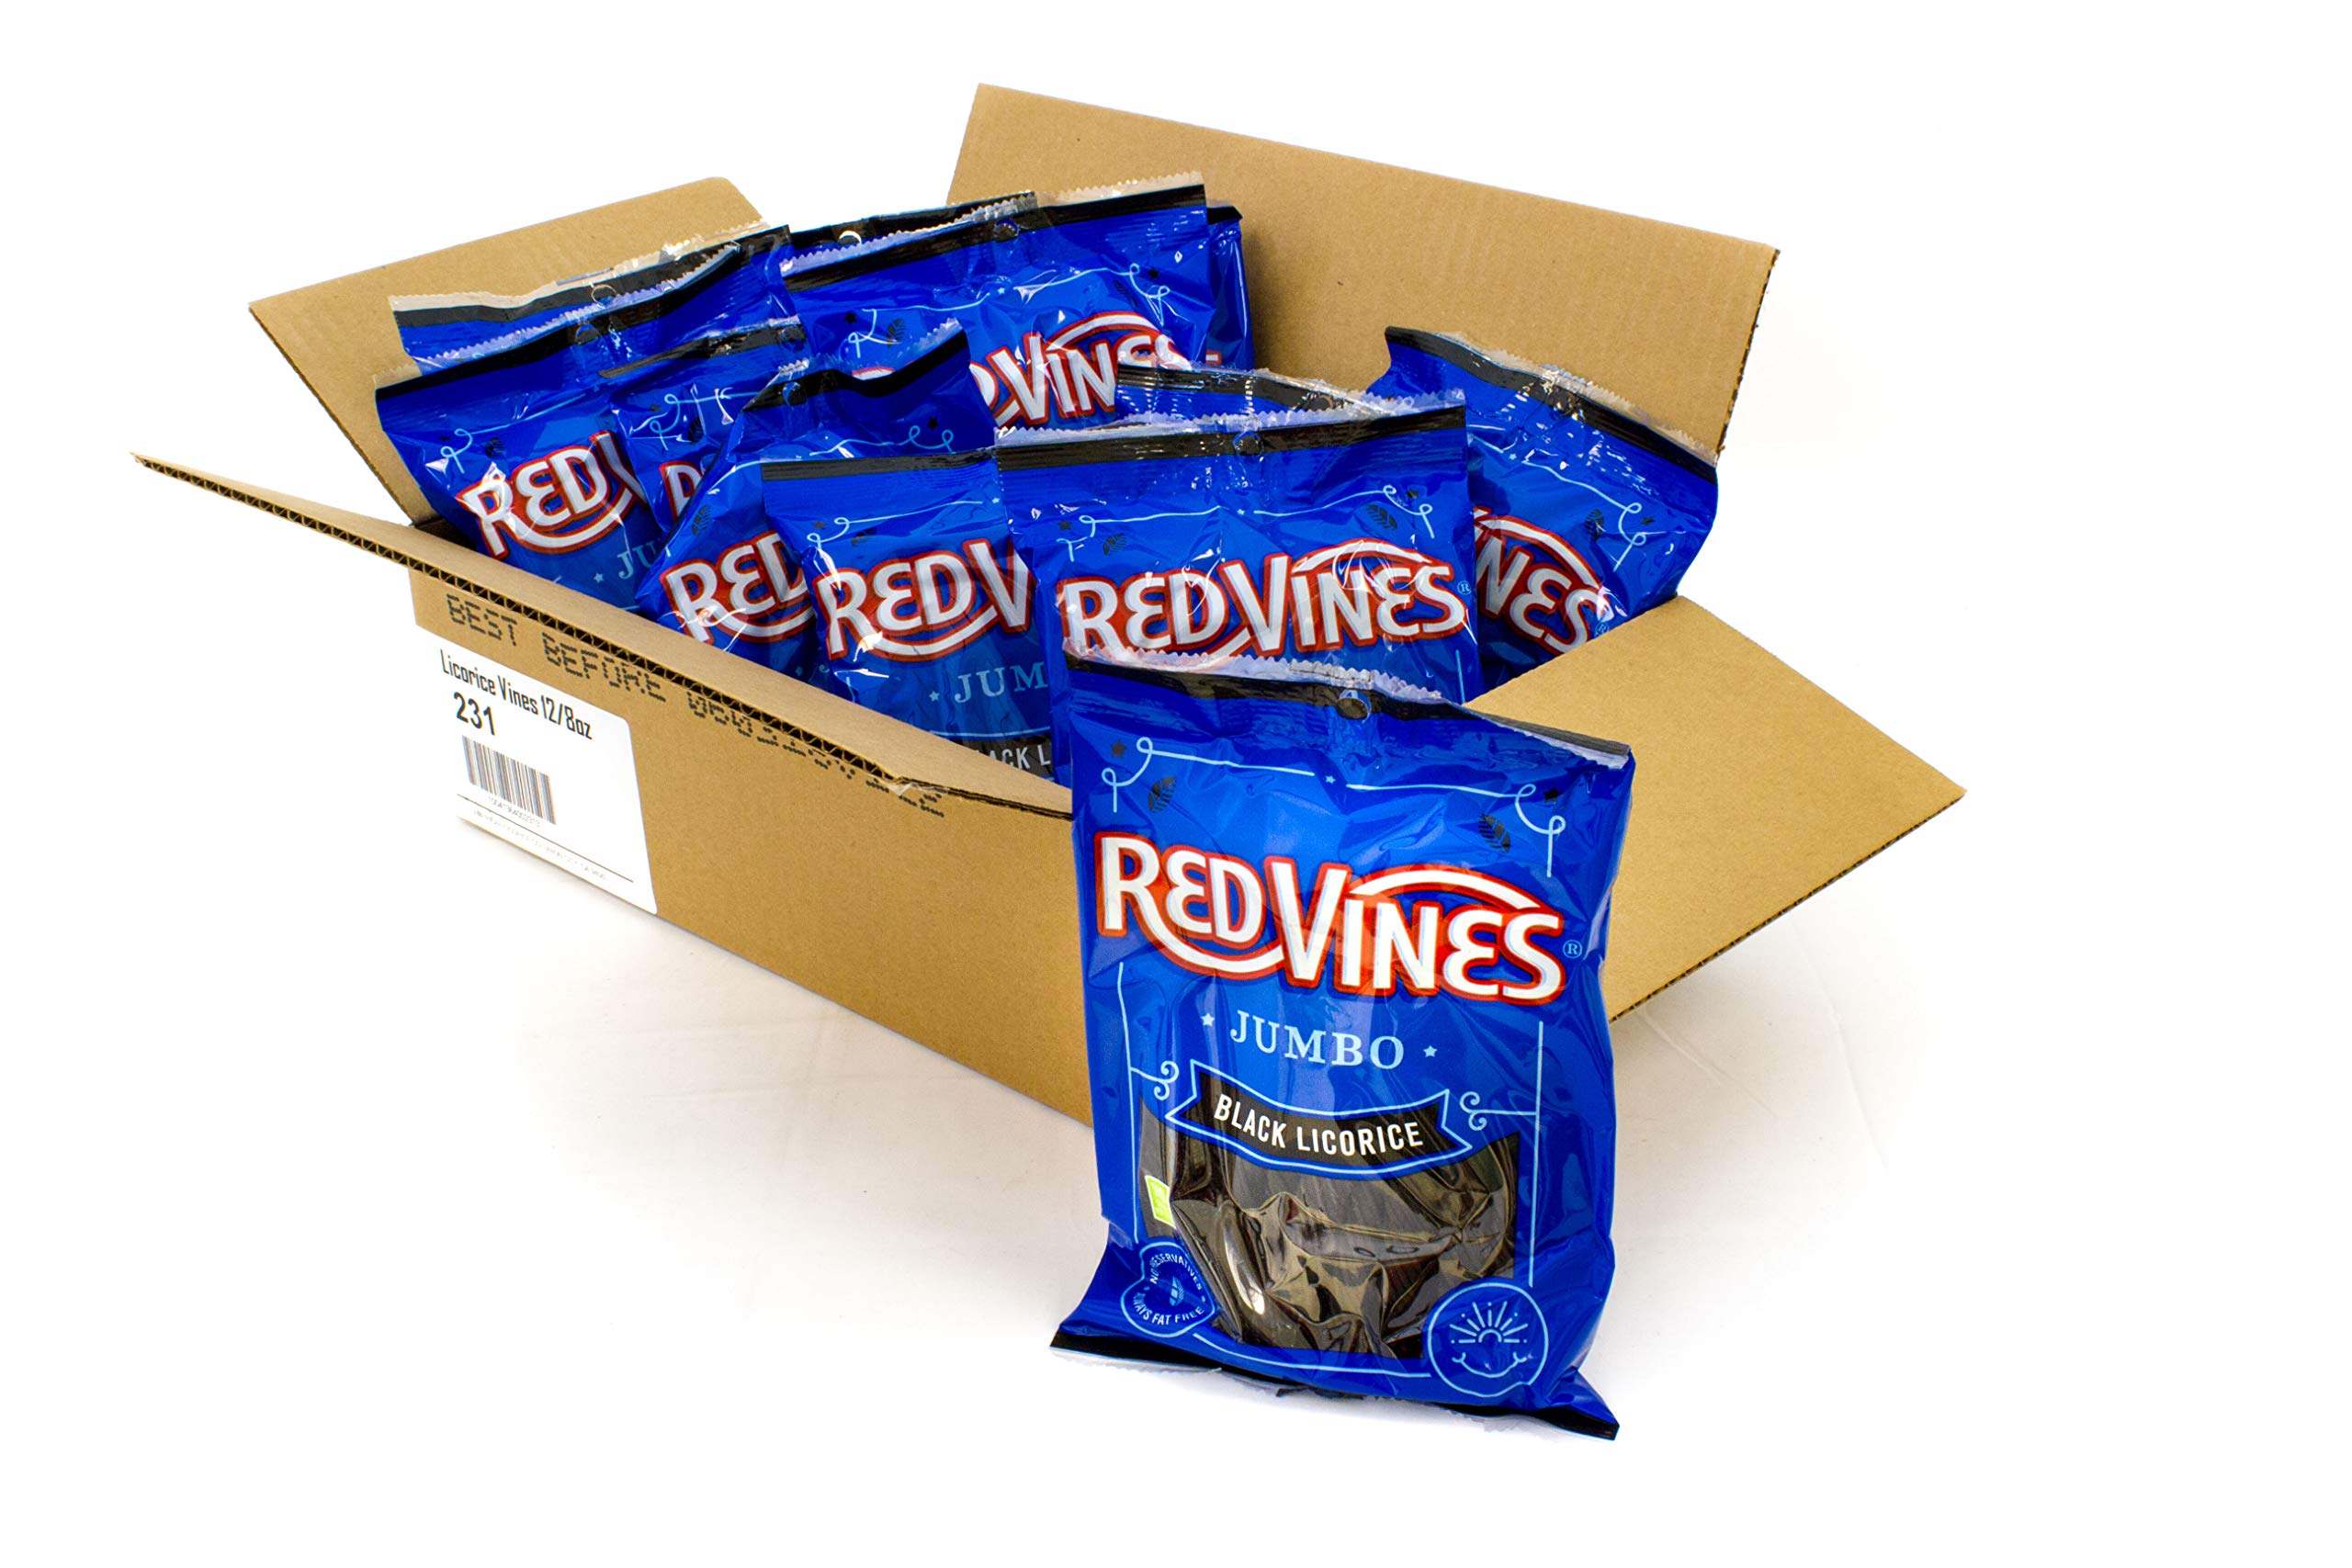 Red Vines Jumbo Black Licorice, 8oz Bag (12 Pack), Soft & Chewy Candy Twists